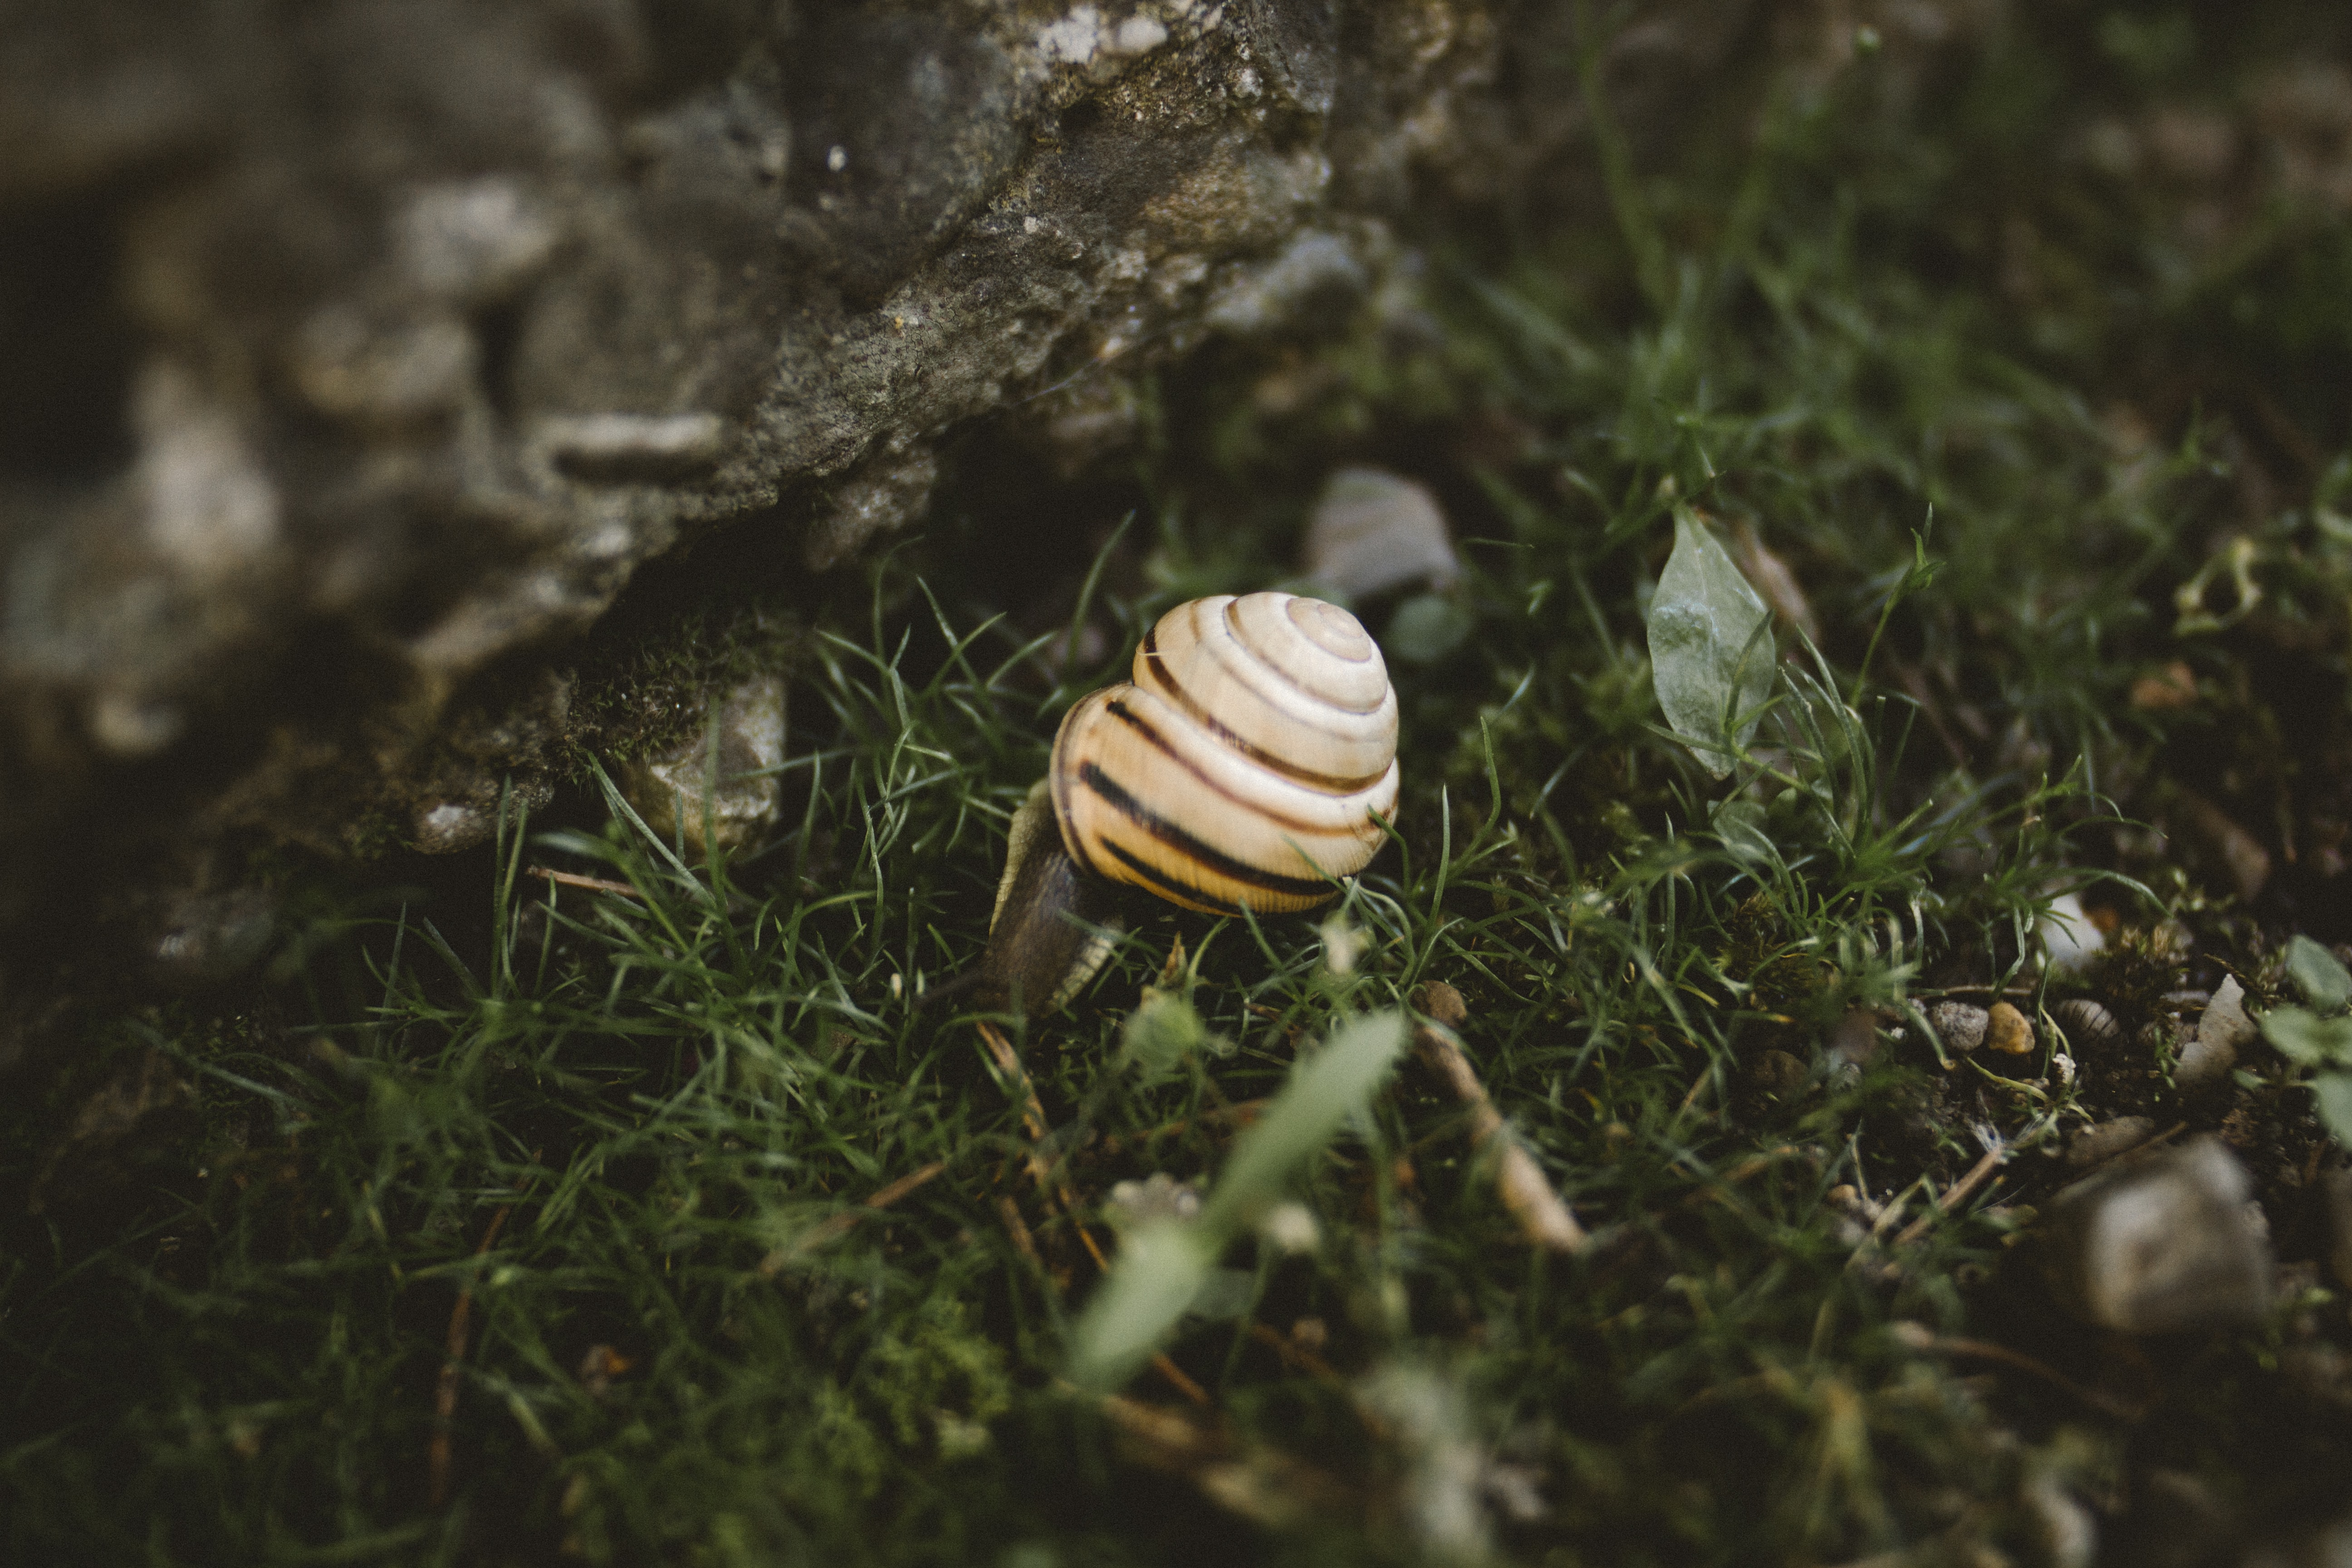 A snail crawls beside a large rock on a patch of grass